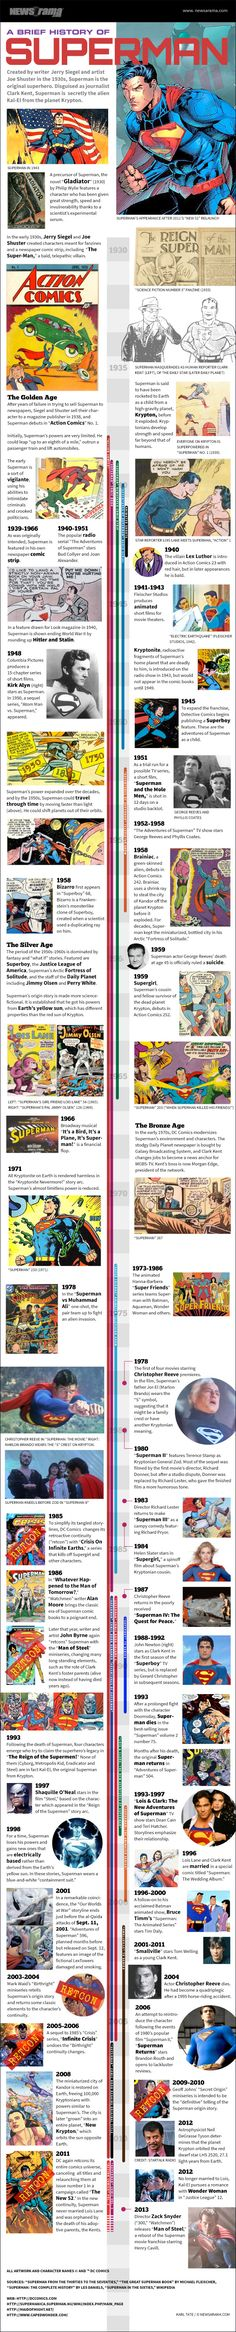 #Superman history infographic